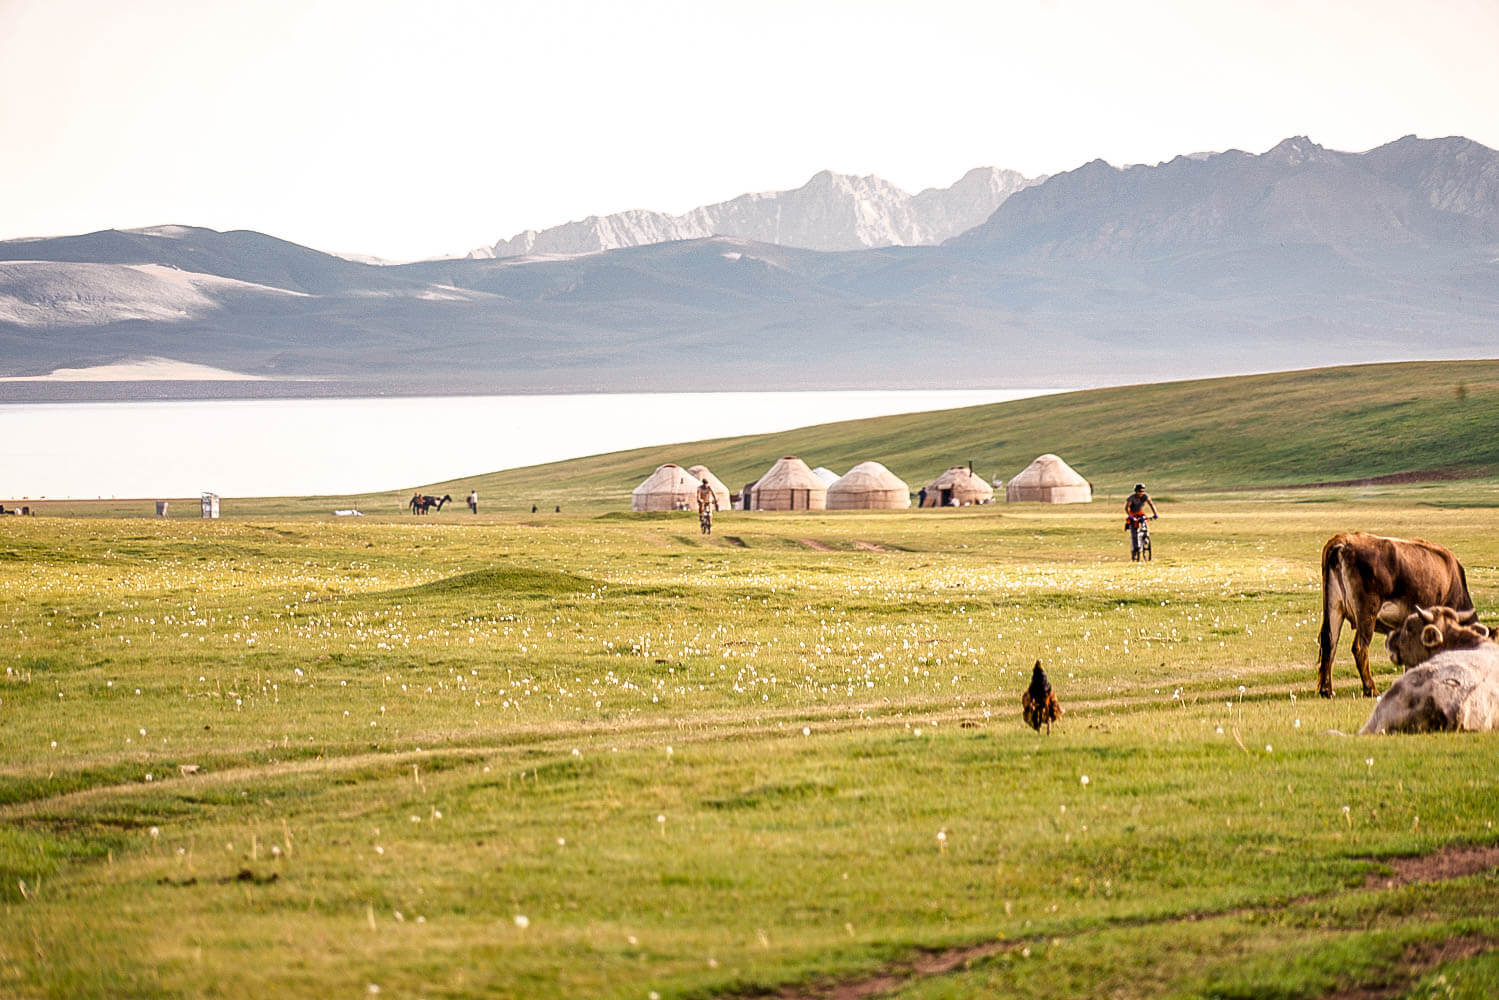 Best of Central Asia Tour - Yurt Camp at Song Kul Lake Kyrgyzstan